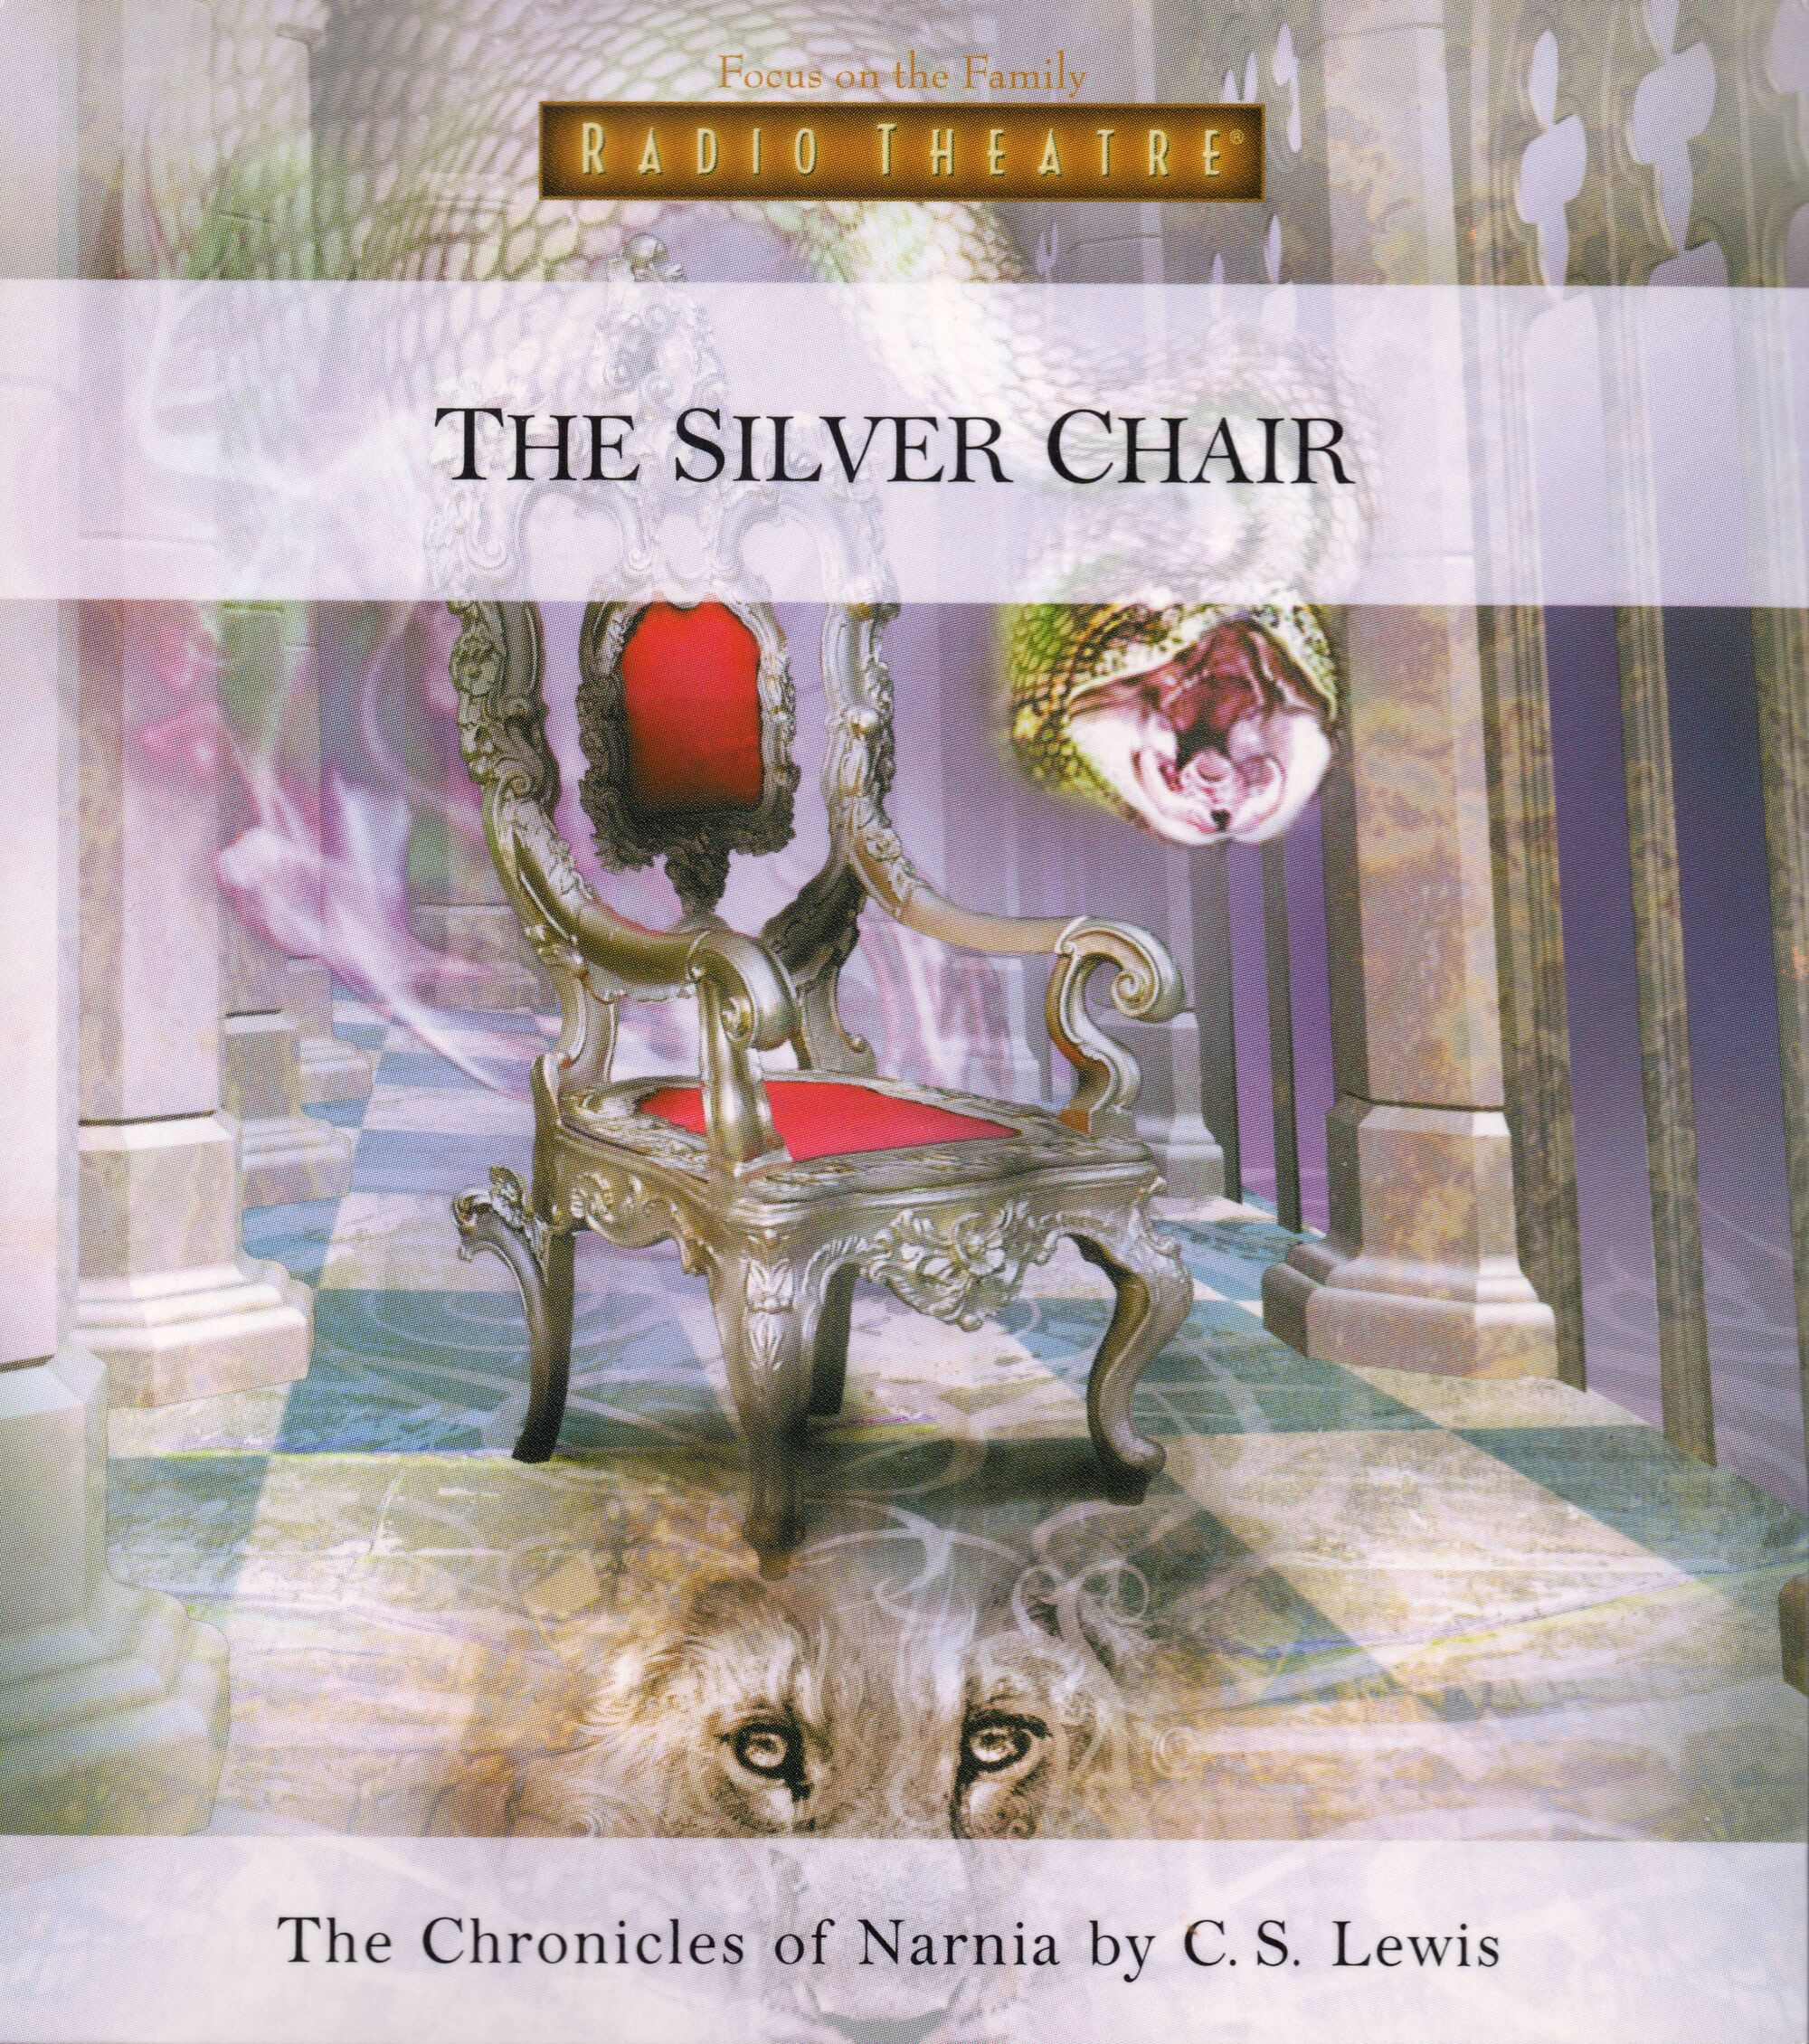 The Silver Chair Focus on the Family Radio Theatre The